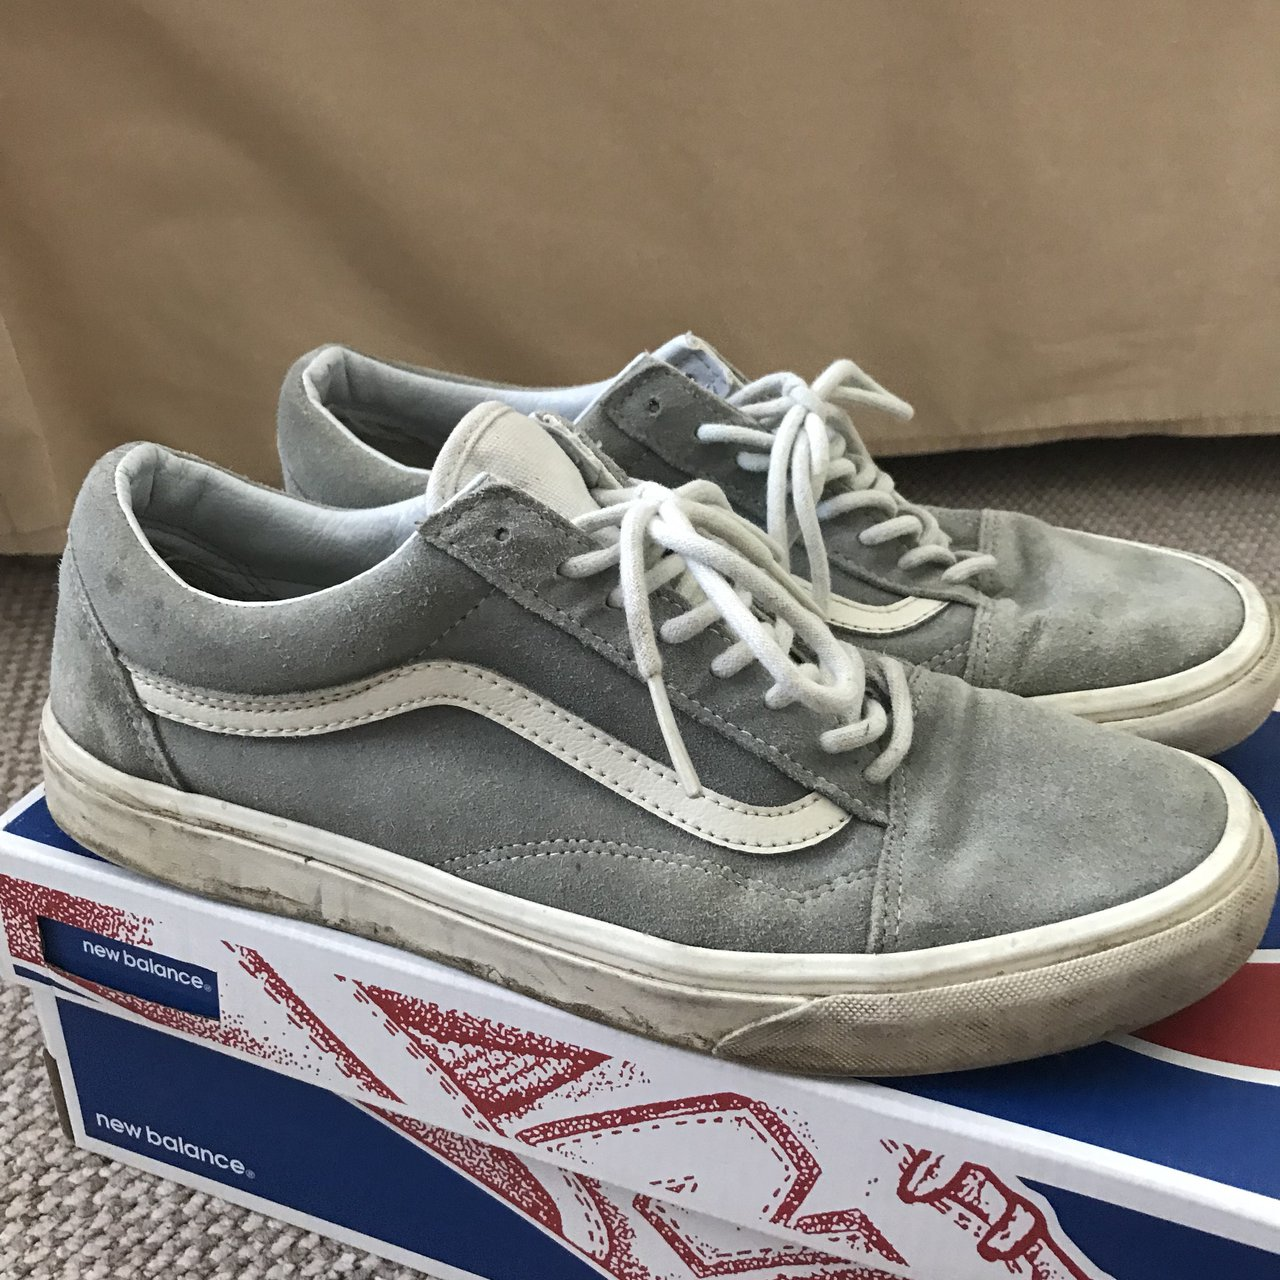 2000e320abbfaf Men s Grey Vans Size 9. Decent condition 7 10 Lots more in - Depop